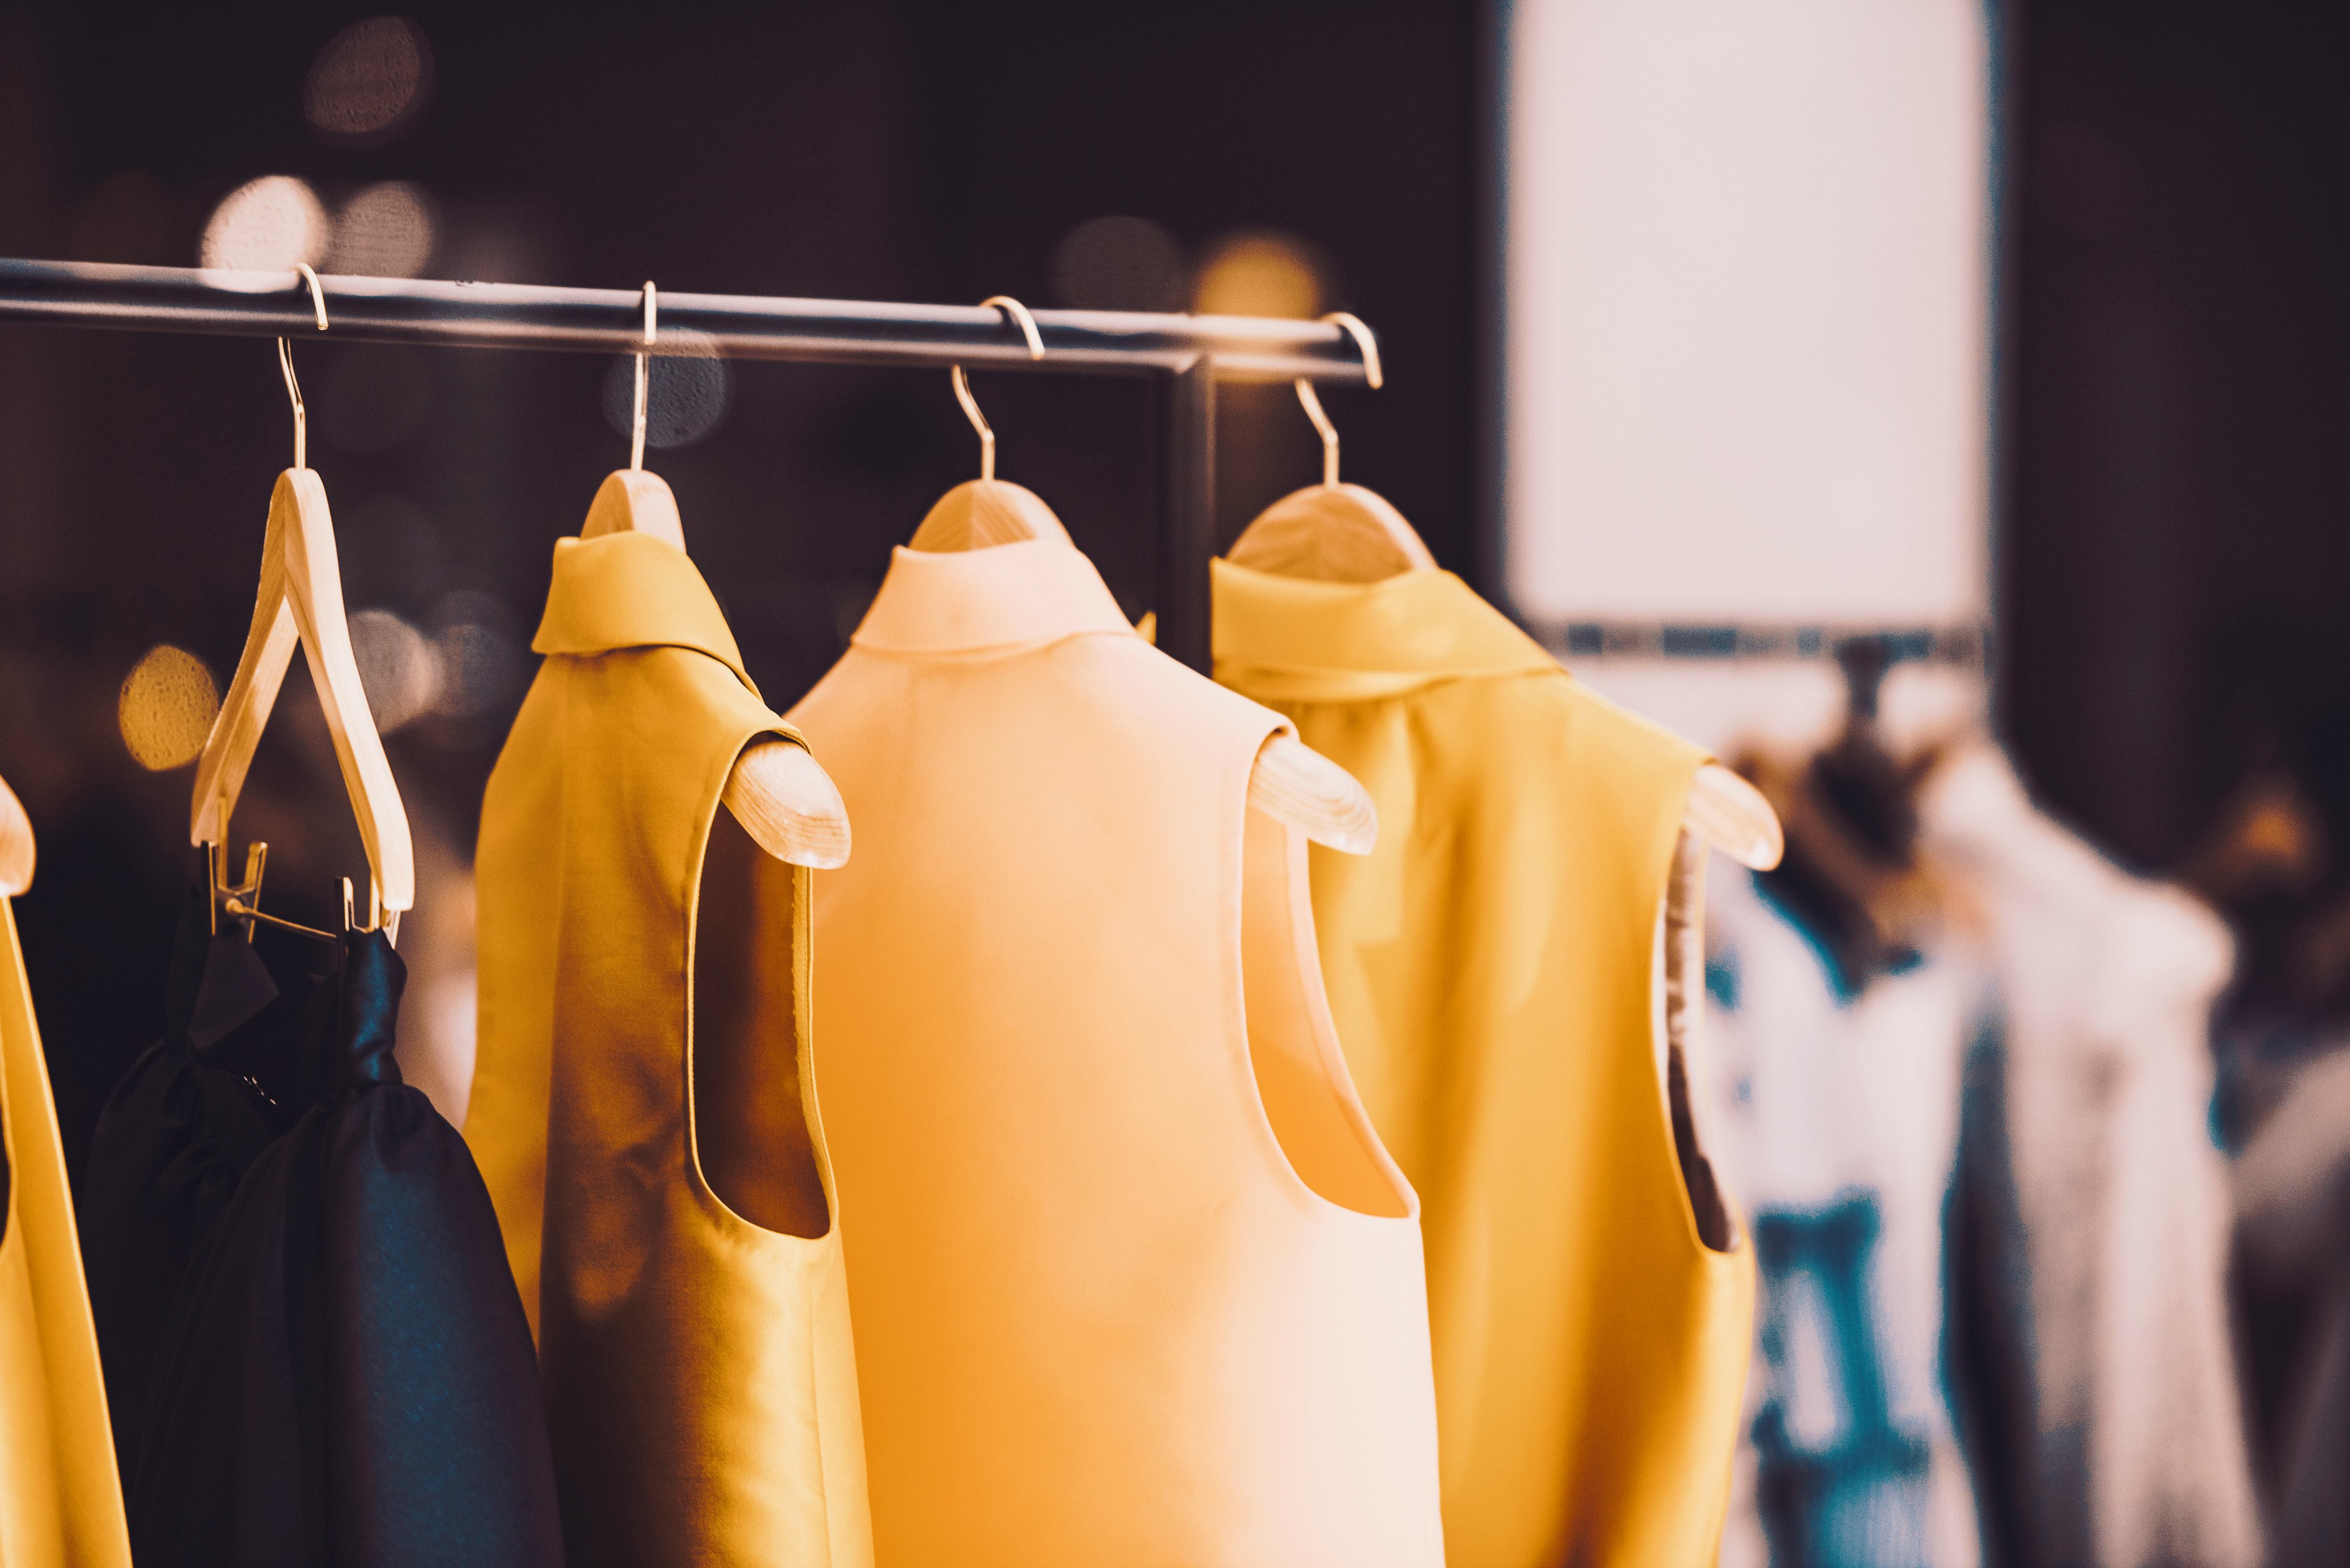 Fashion brand display of a a rack of clothing. Brands should take steps to reduce waste